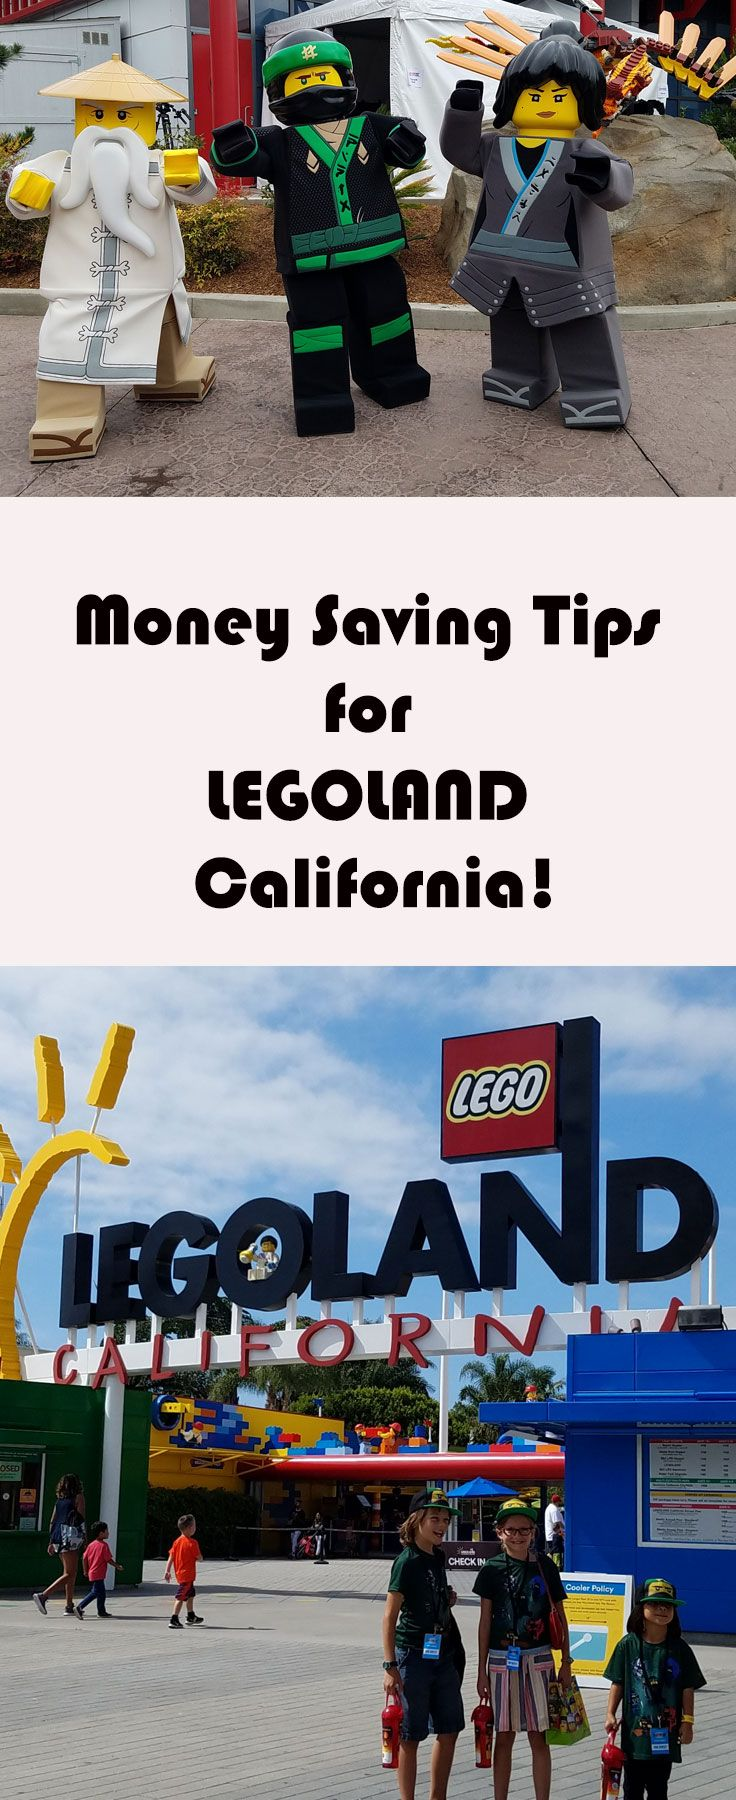 Money Saving Tips For Legoland That Will Help You Stretch Your